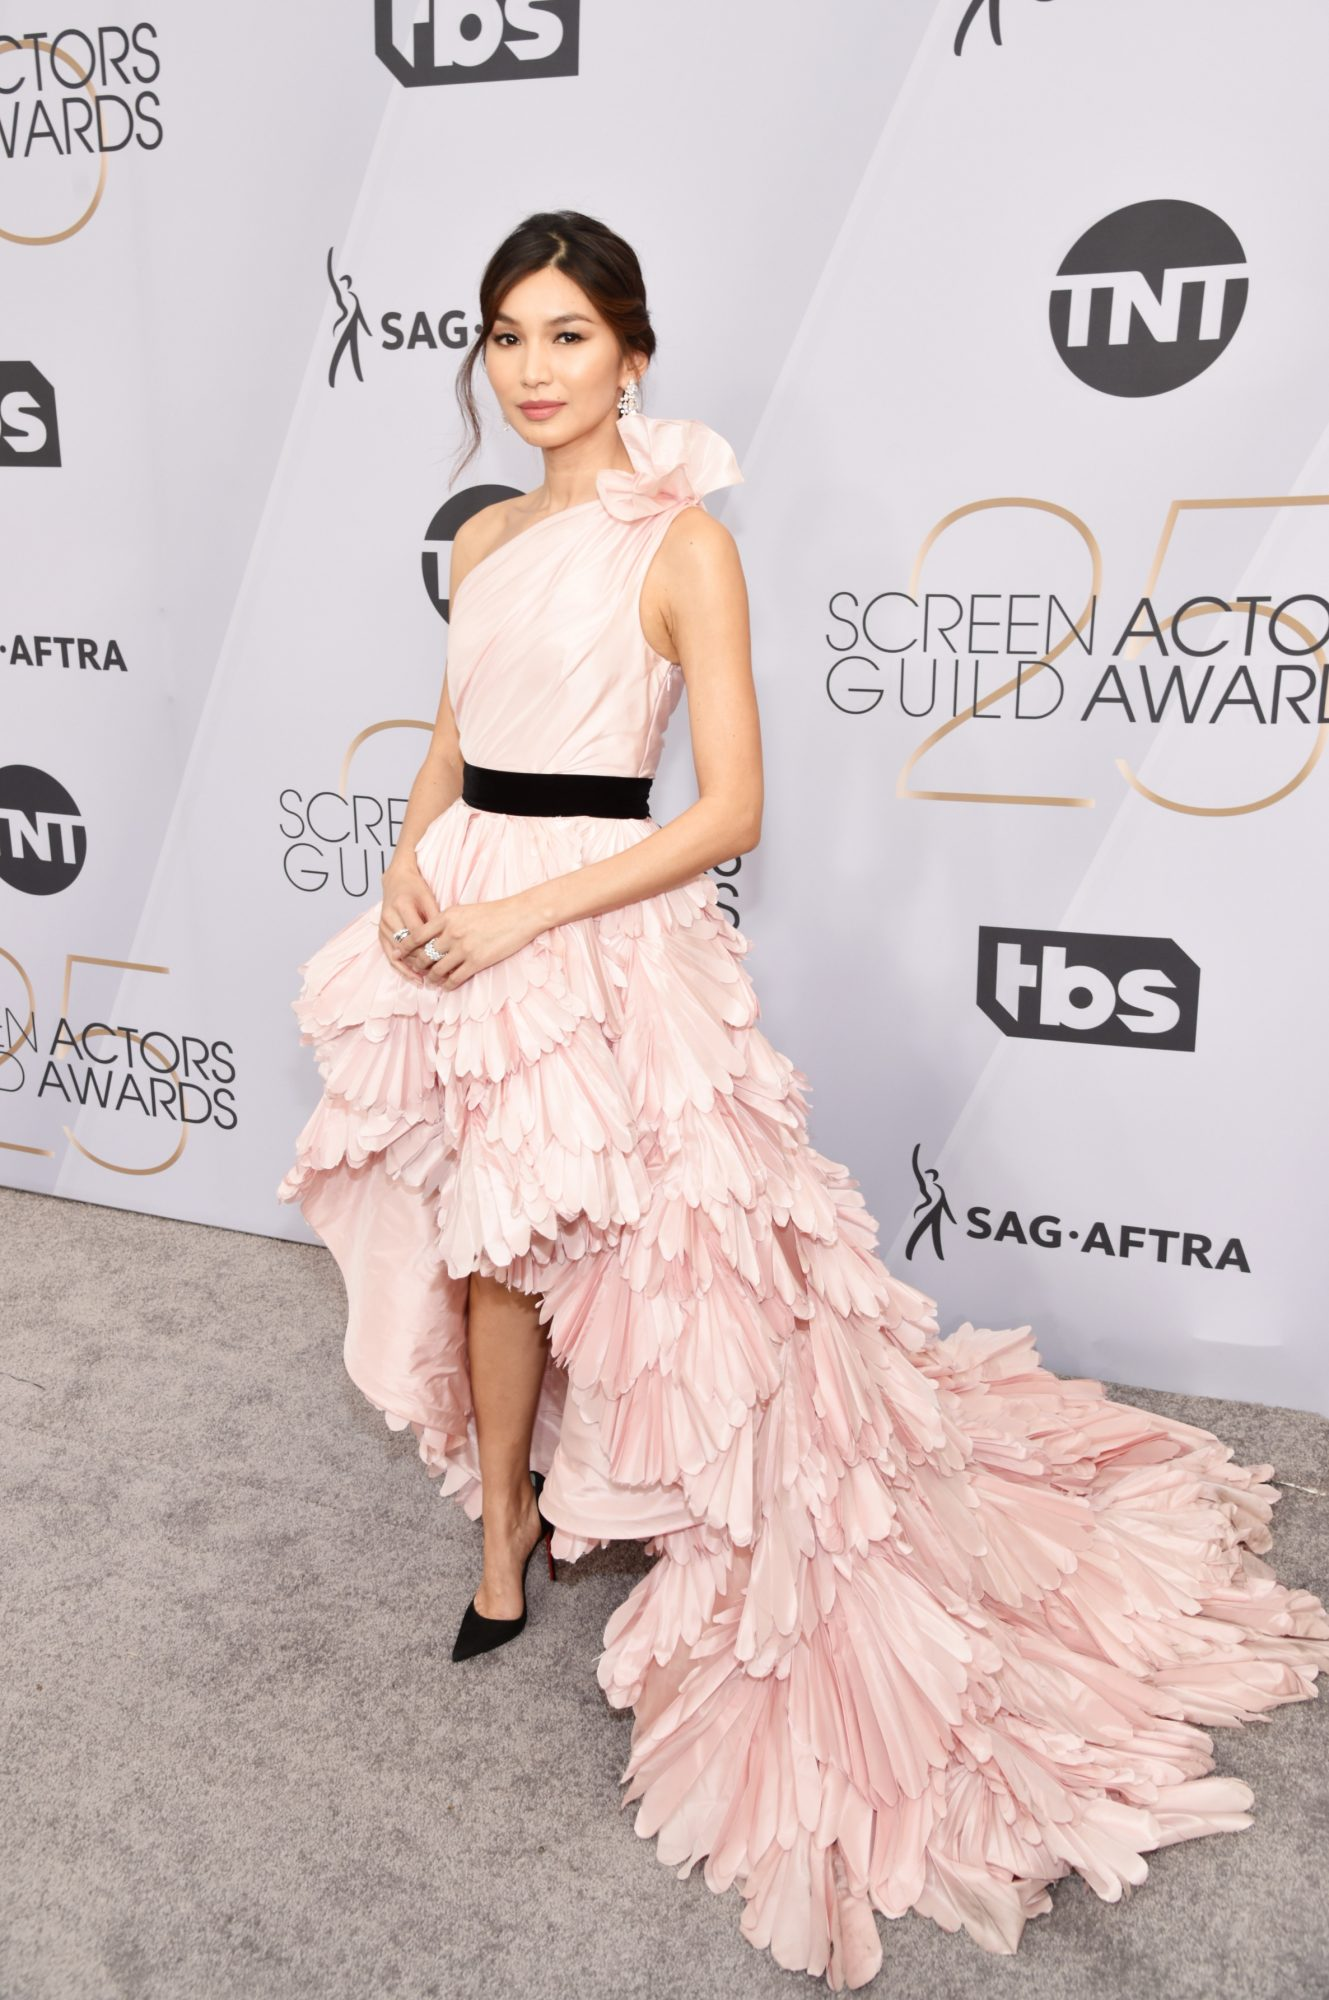 Forget Princess Dresses, Gemma Chan's Pink Gown Is an Oscars Dream Come True